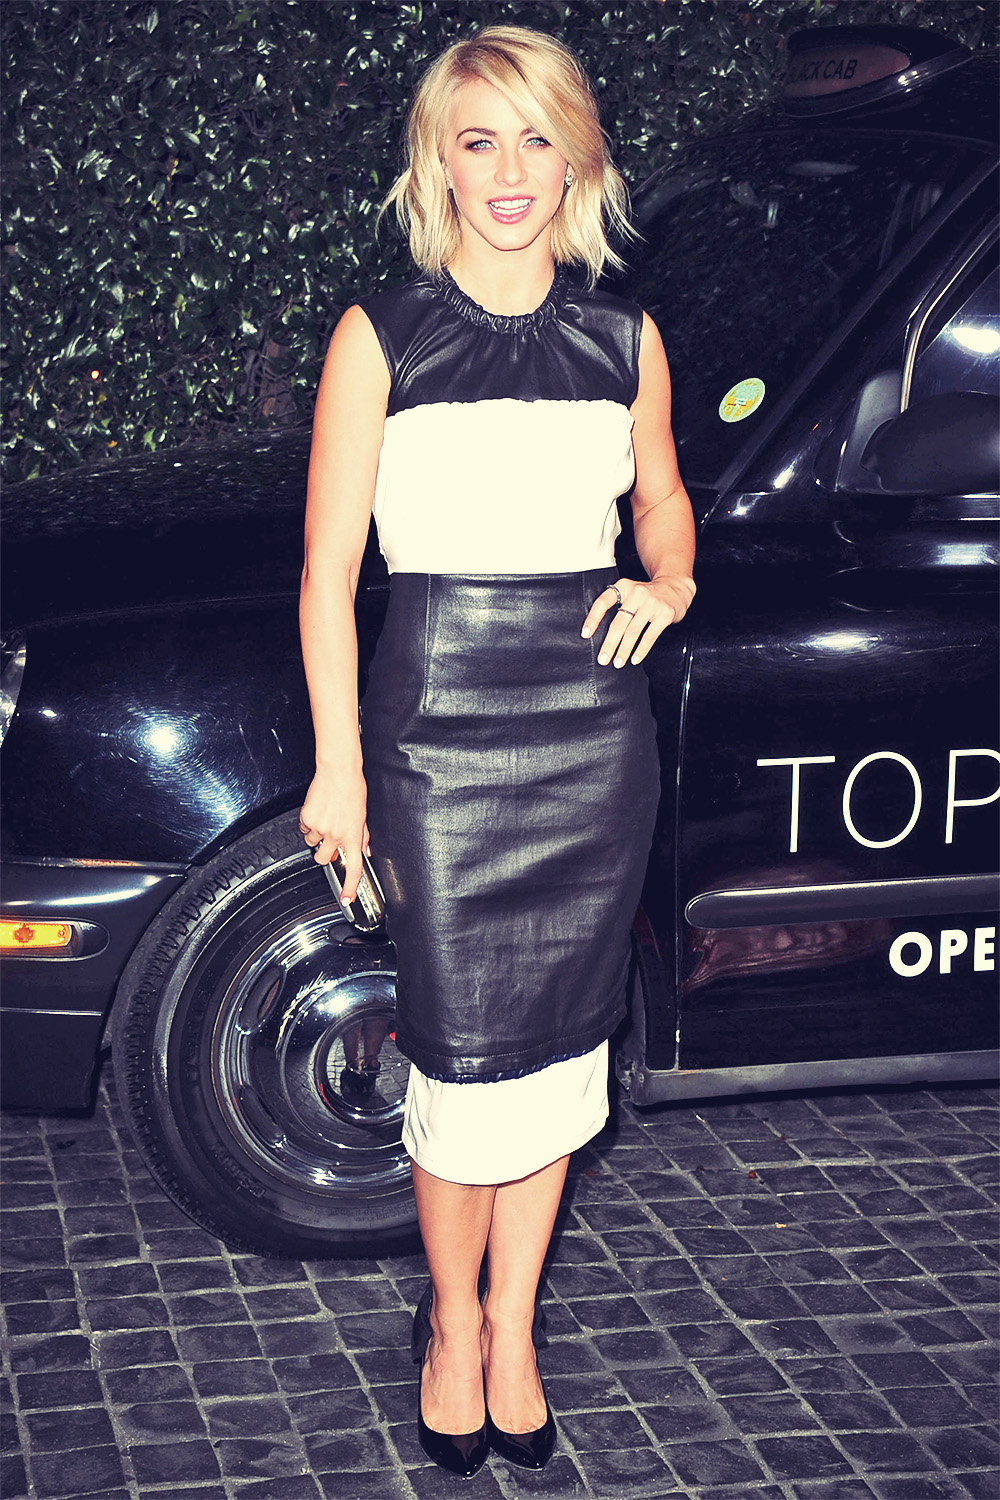 Julianne Hough attends a Party For TopShop